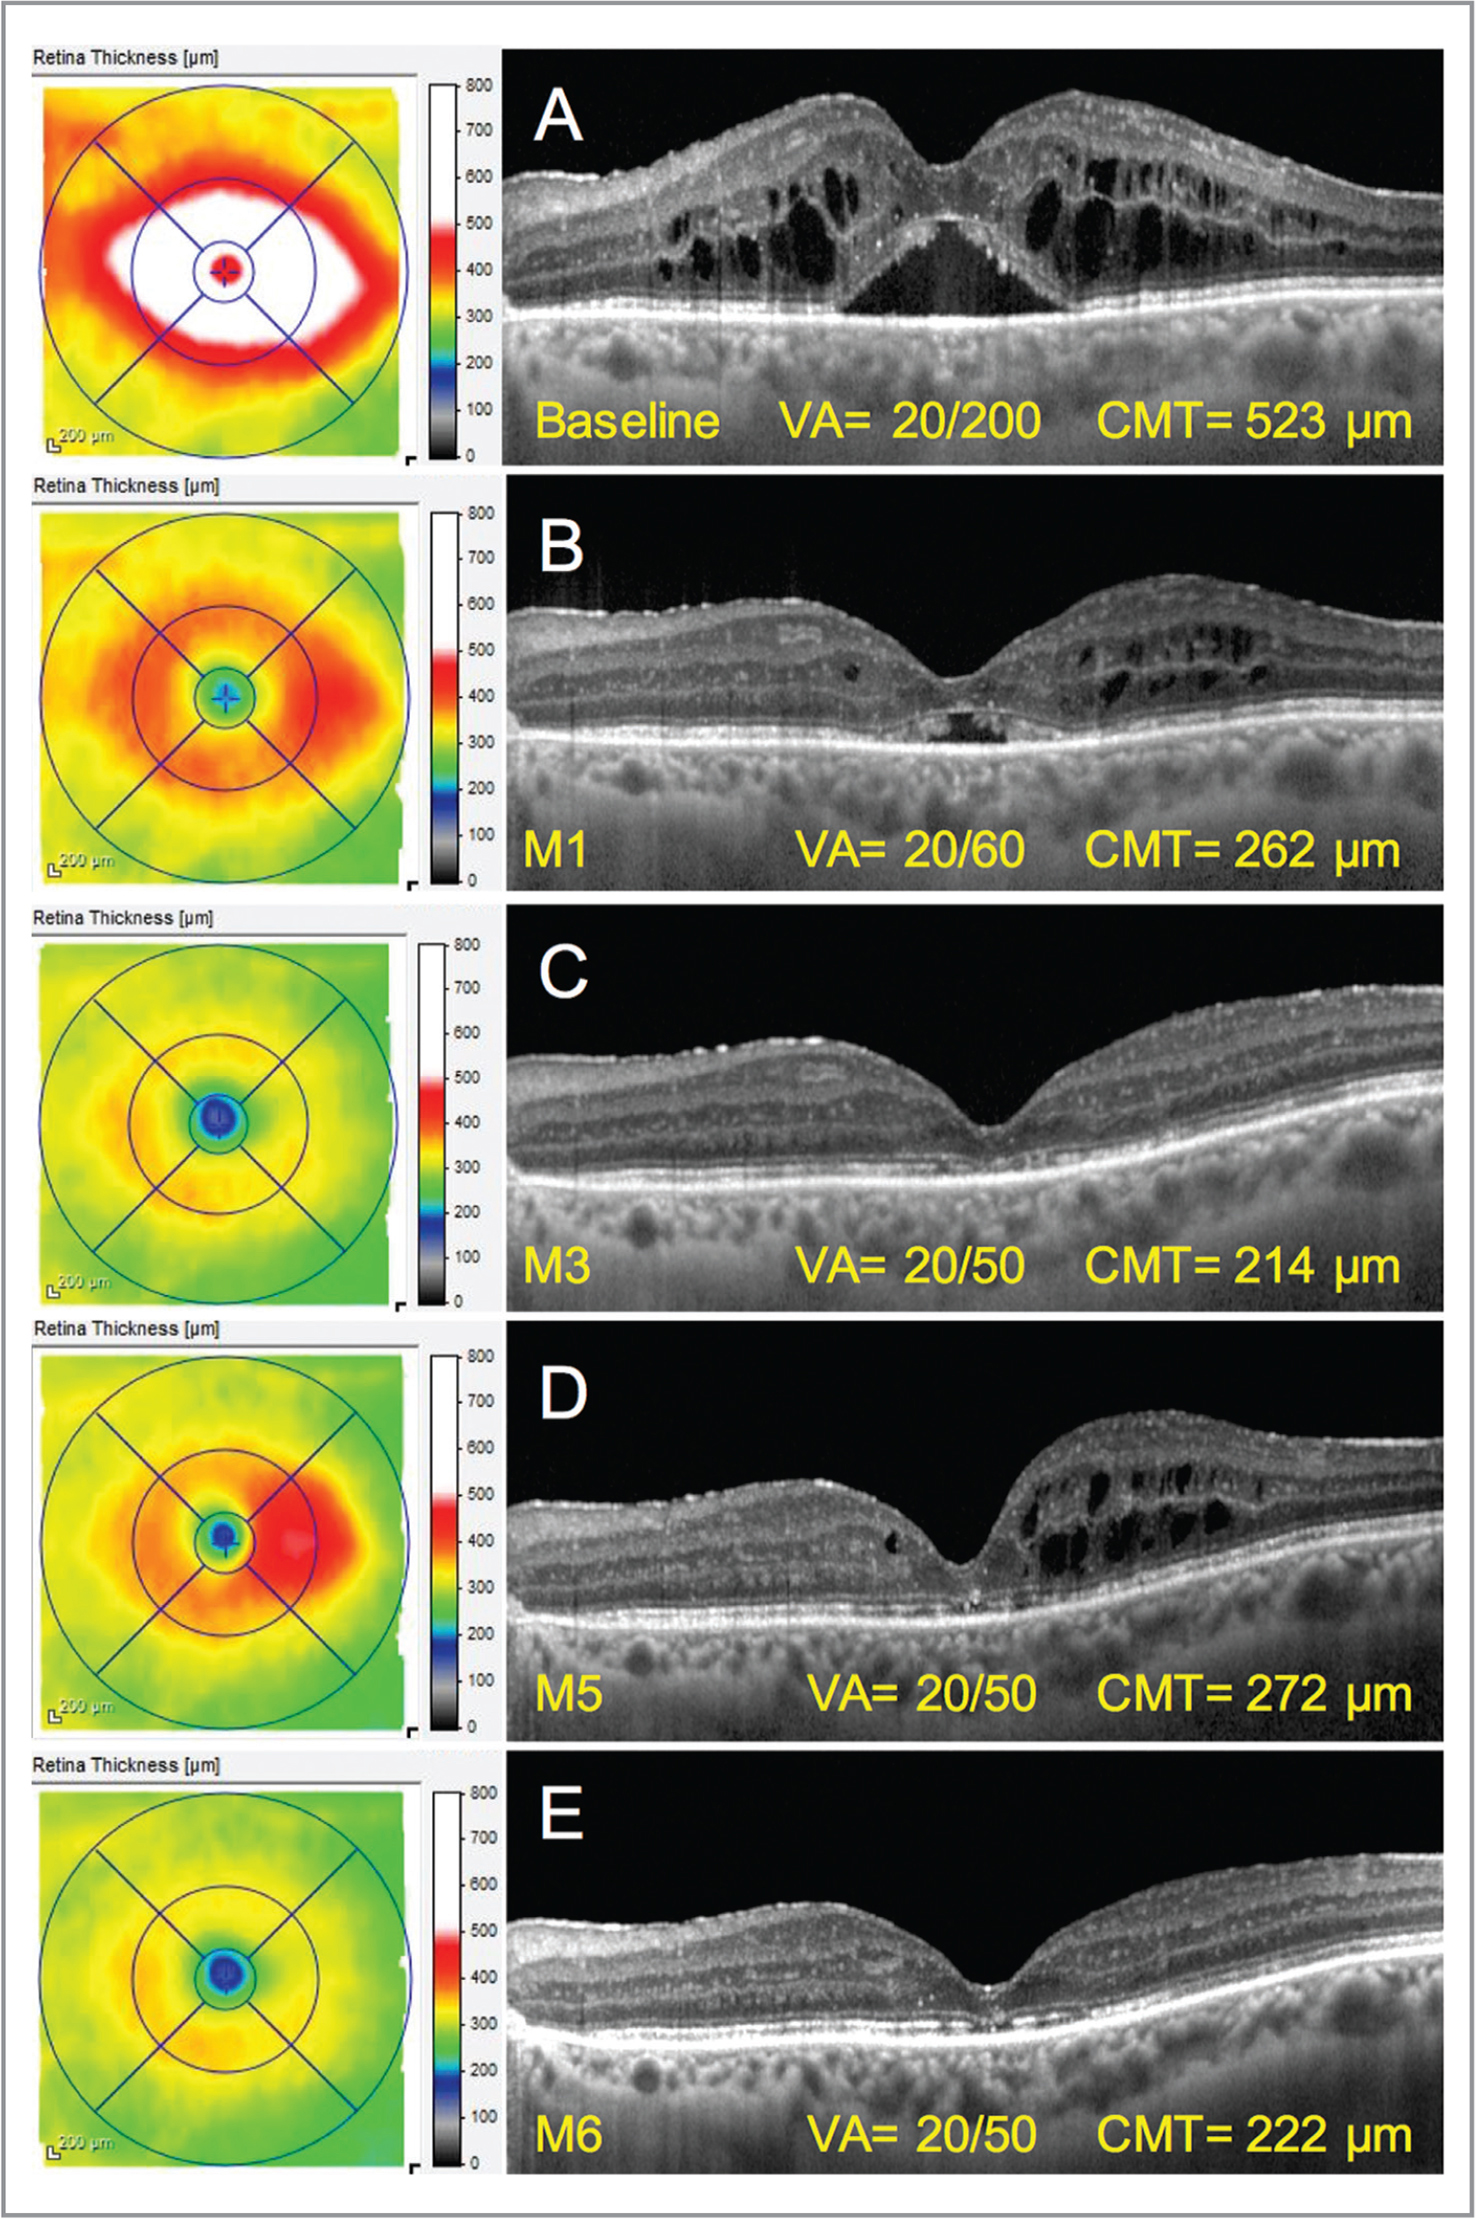 Progressive resolution of macular edema due to Irvine-Gass syndrome and visual improvement in a 76-year-old woman treated by oral eplerenone and topical dexamethasone drops 2 years after complicated cataract extraction, intraocular lens dislocation, and pars plana vitrectomy. (A) At presentation. (B) Anatomical and visual improvement were observed 1 month after initiating oral eplerenone 25 mg and topical dexamethasone drops (4 times daily). (C) Further anatomical and visual improvement were noted 3 months after treatment initiation with dexamethasone dose tapering (three times daily). (D) One month after progressive dose reduction of dexamethasone reached one drop per day, a recurrence of macular edema was observed. (E) Re-improvement was visible 1 month after increasing dexamethasone drops again at four times daily while continuing oral eplerenone. M = month; VA = visual acuity; CMT = central macular thickness.